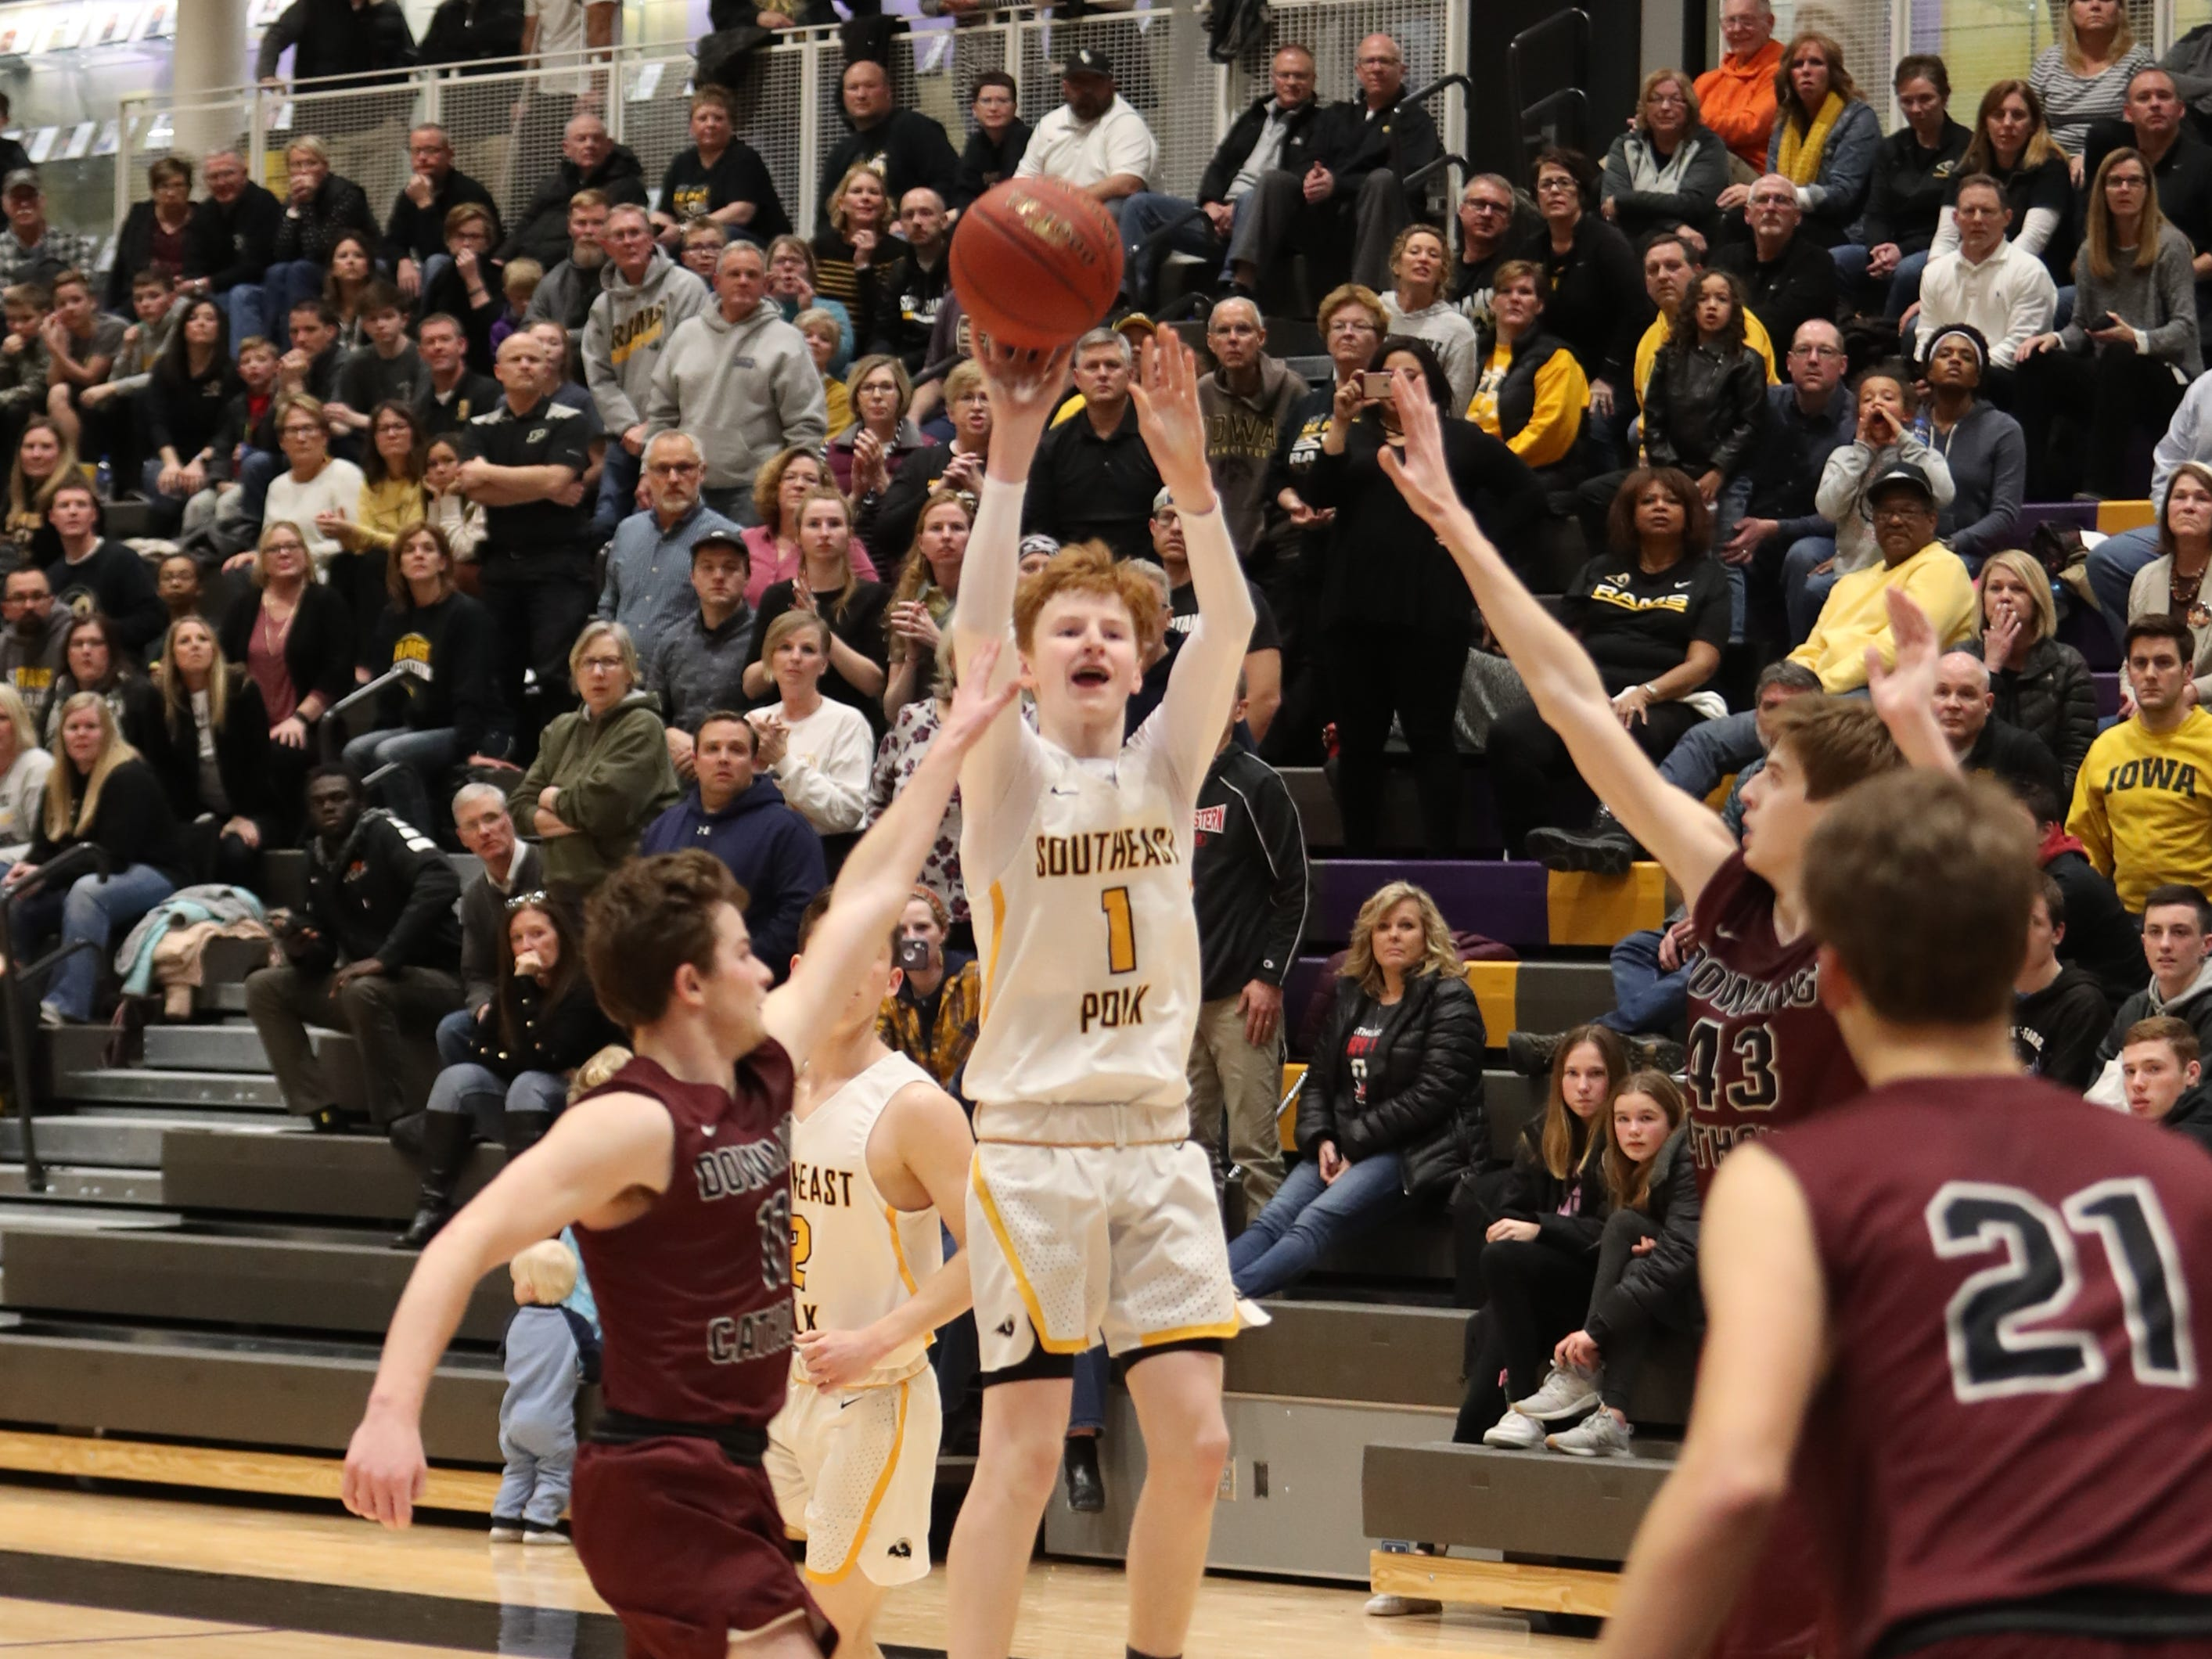 Southeast Polk's James Glenn (1) shoots against Dowling Catholic during their game at Johnston High School in Johnston, Iowa, on Tuesday, Feb. 26, 2019. Dowling won the game 44-40 to advance to state.